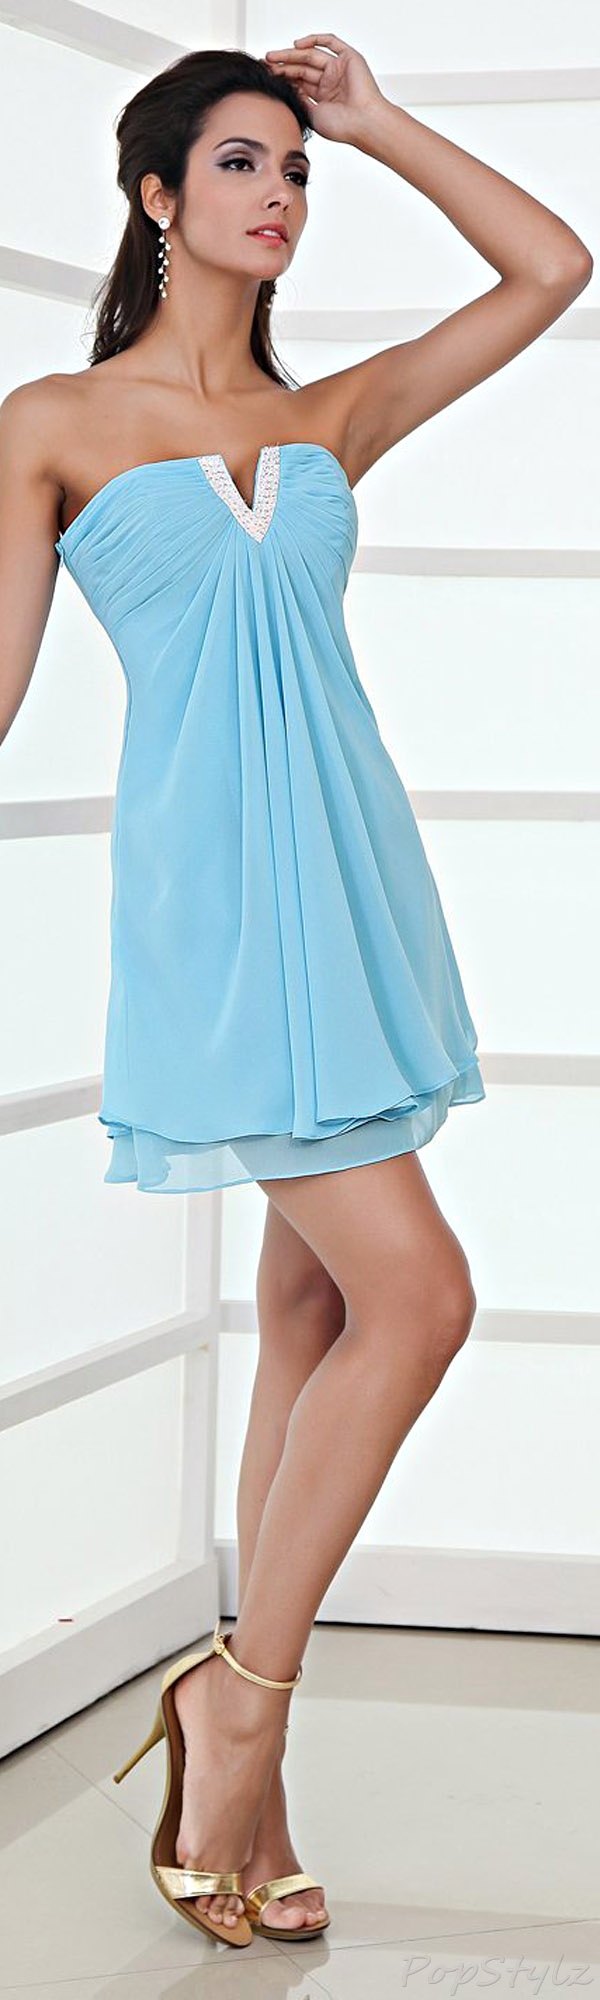 Honeystore Chiffon Short Dress